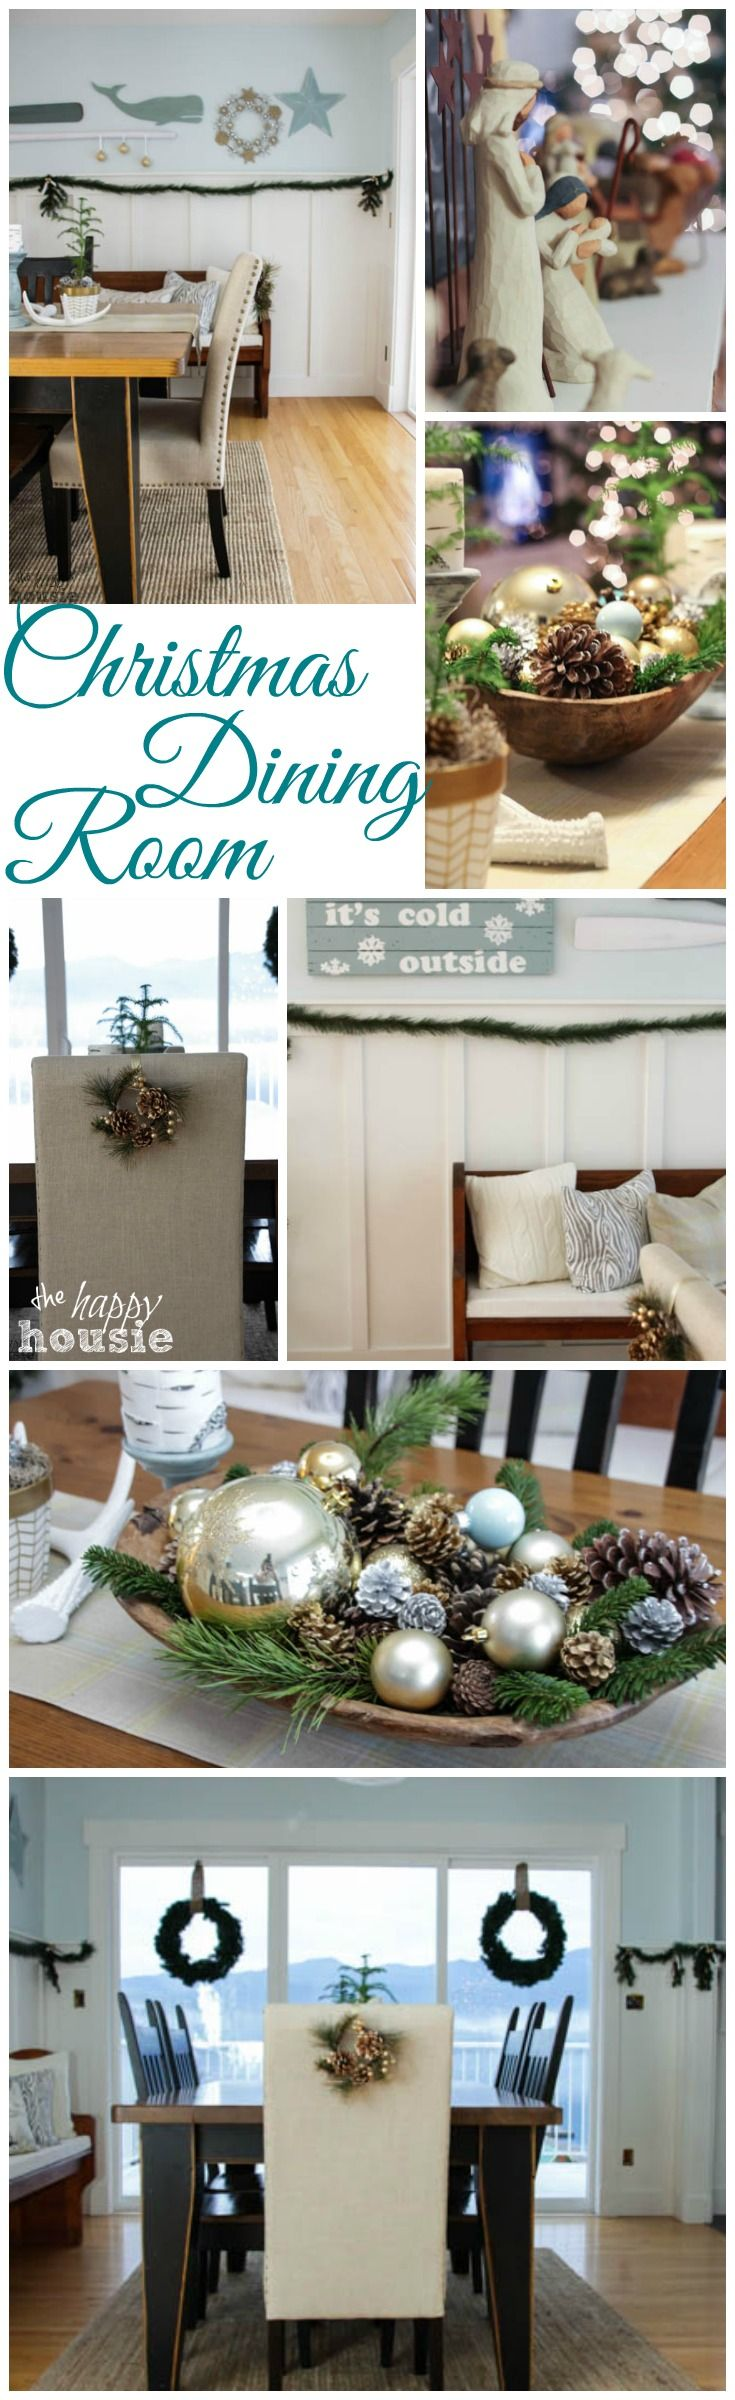 Come on over to take a tour of our Christmas Dining Room with blue and gold and lake cottage style at The Happy Housie